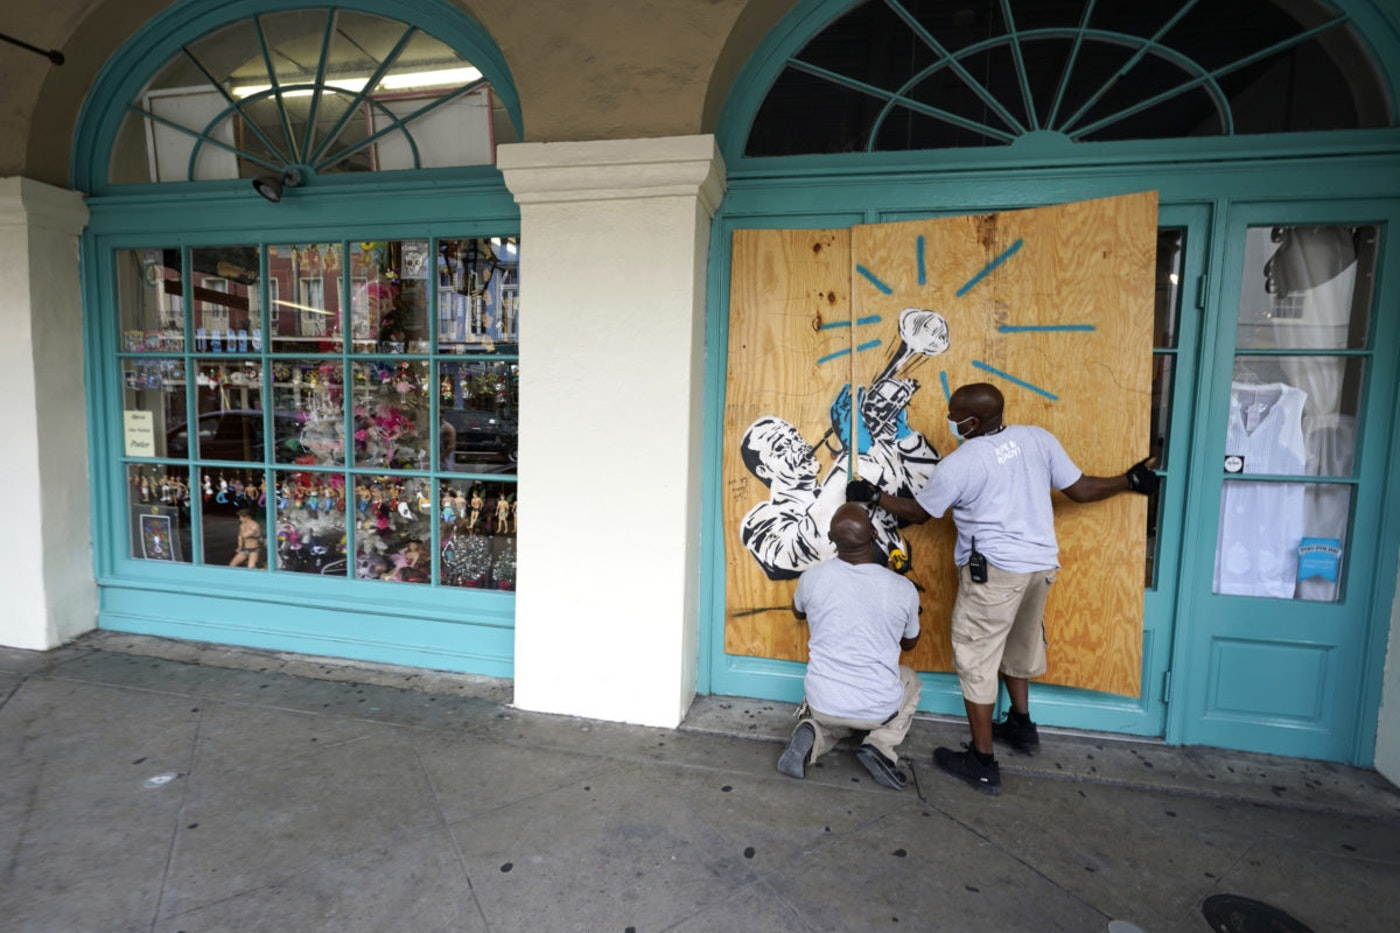 Workers board up shops in the French Quarter of New Orleans, Sunday, Aug. 23, 2020, in advance of storms expected to make landfall on the Southern Louisiana coast. (AP Photo/Gerald Herbert)